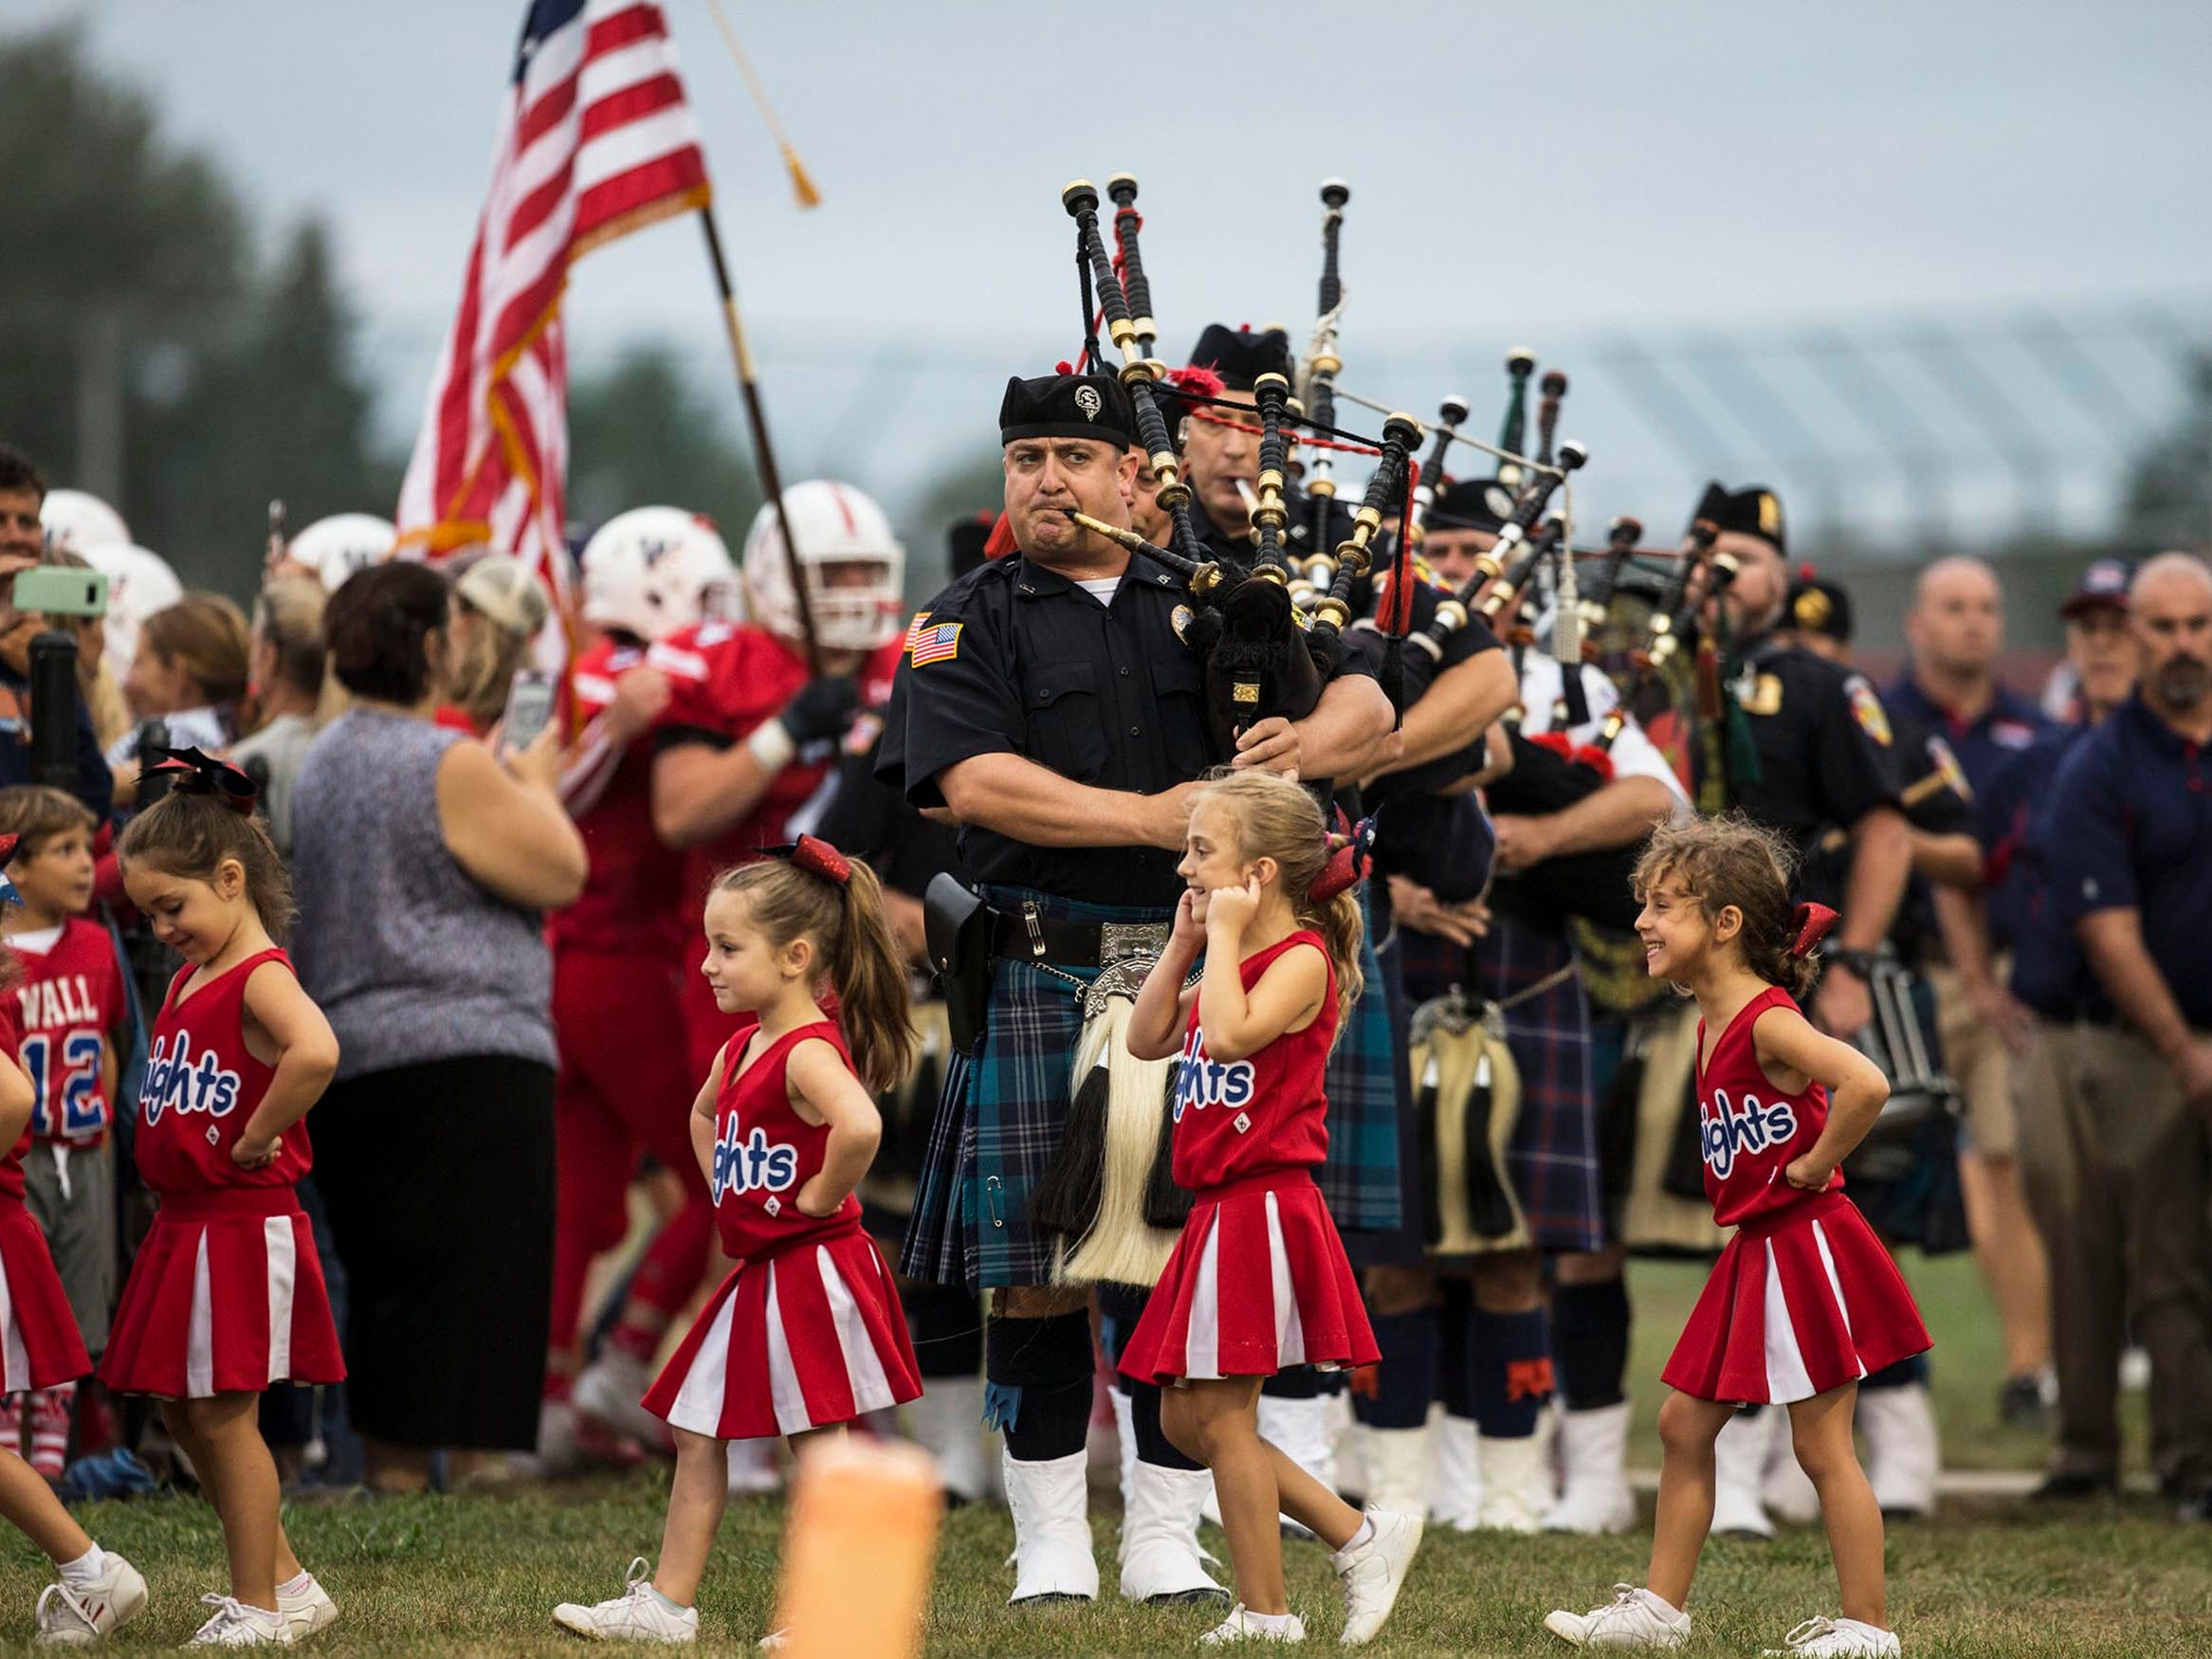 Lakewood vs Wall Township football. Prior to the game, a new scoreboard and bleachers were unveiled. Wall Township PBA 234, Wall Township Police Department, and Lakewood  Police Department held a dedication ceremony.  Wall Township, NJ on Friday, September 7, 2018